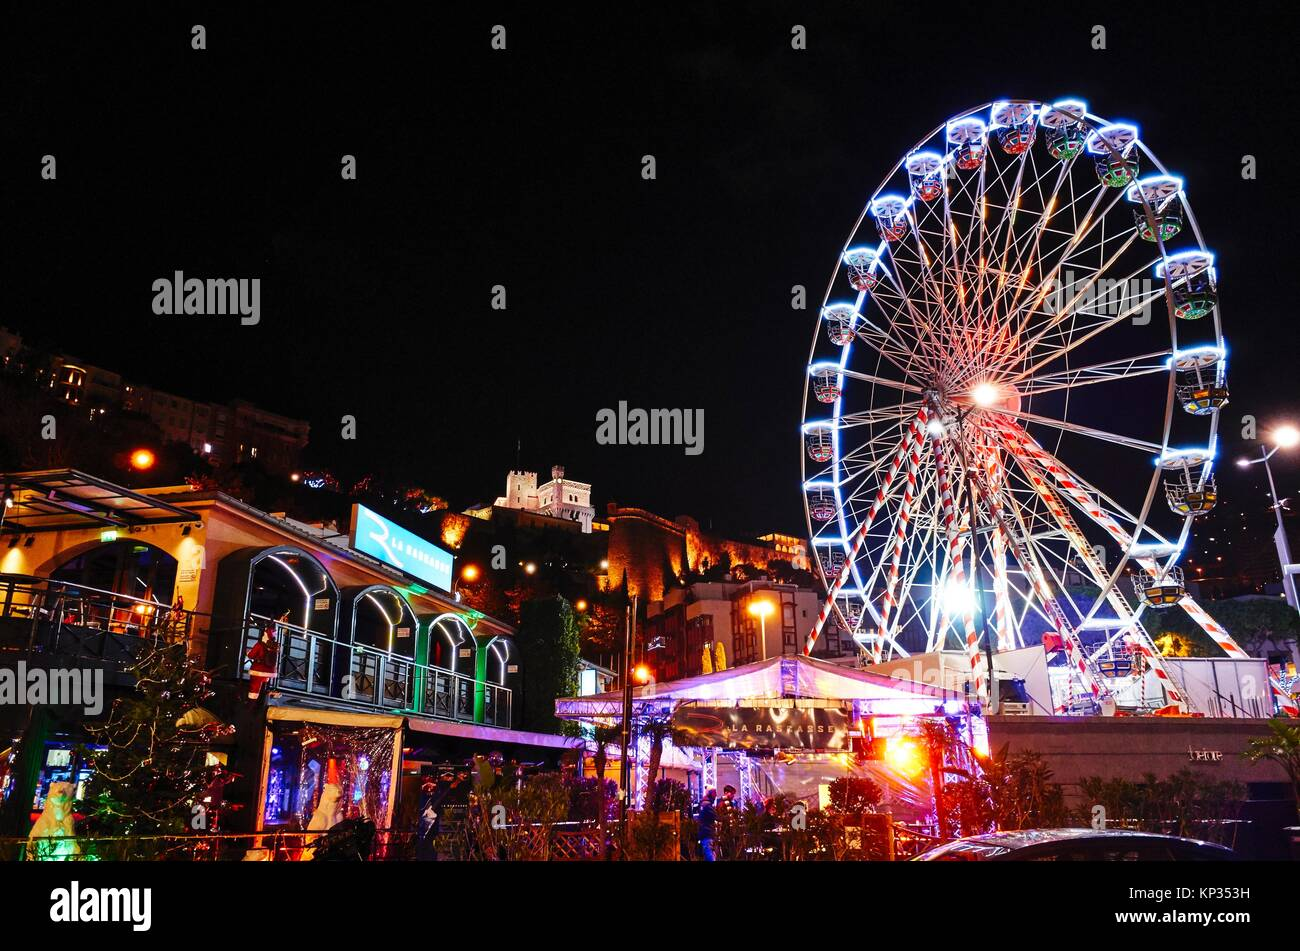 The amusement park by the port of Montecarlo, Monaco Principality - Stock Image